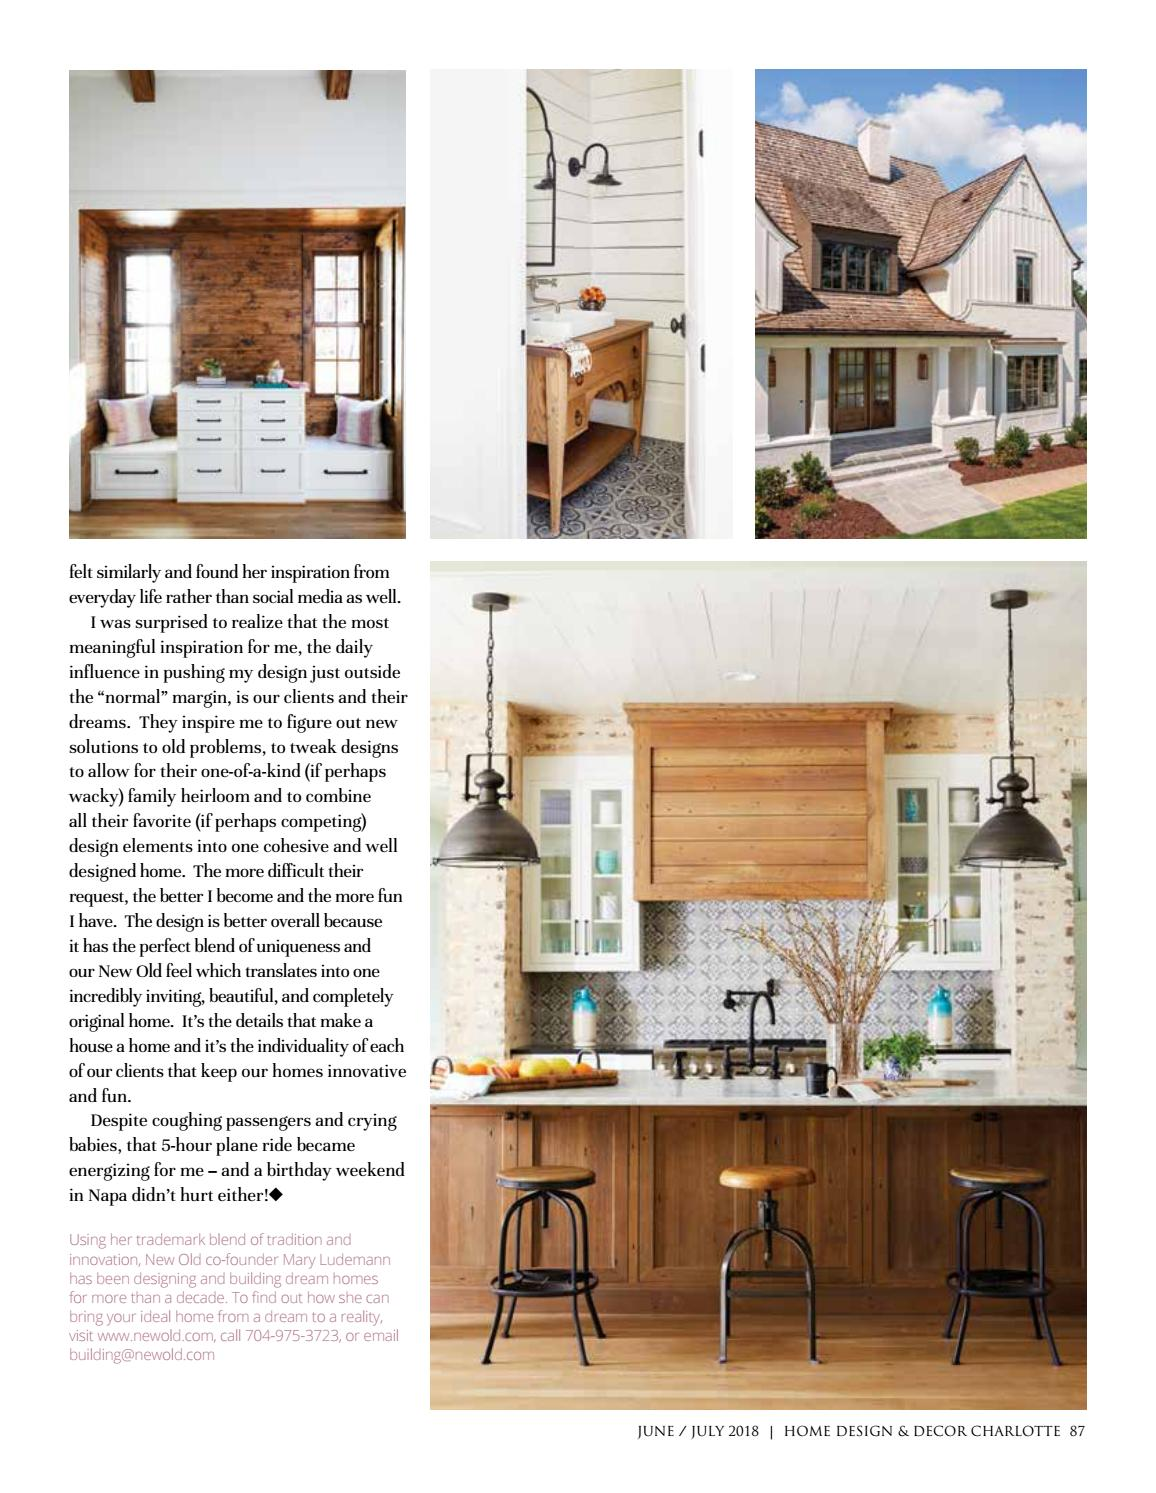 Chlt June July 2018 by Home Design & Decor Magazine - issuu Ideal Home Design Page on keystone home design, nelson home design, byron home design, howes home design, jefferson home design, english home design, kingston home design, high-tech home design, group home design, perry home design, white home design, idea home design, crawford home design, hamilton home design, morgan home design, good home design, gray home design, exterior home house design, lexington home design, universal home design,